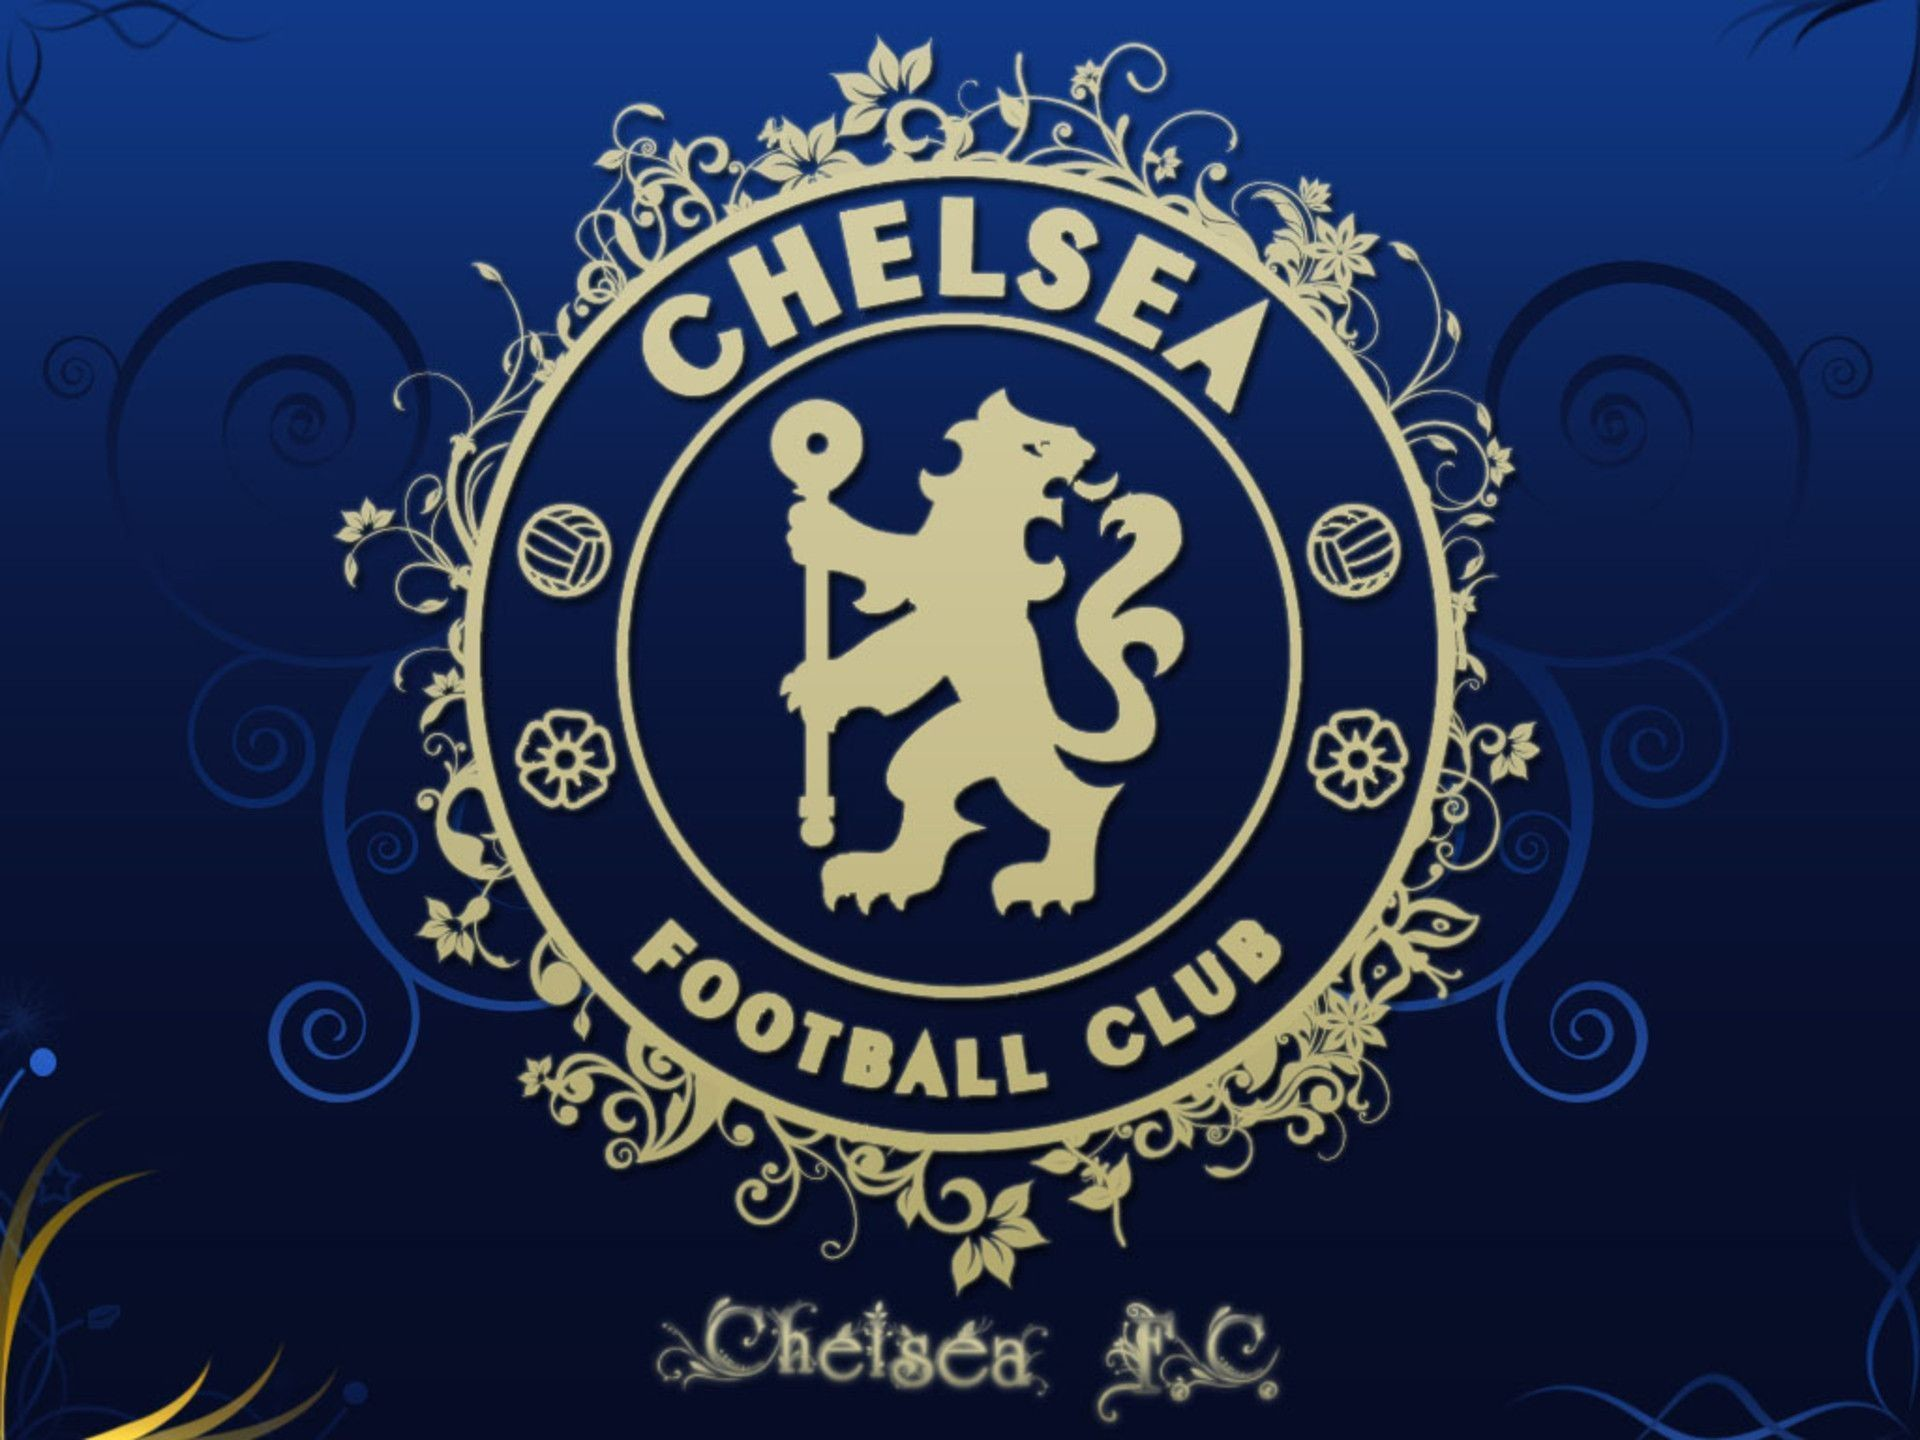 Chelsea hd wallpapers 1080p 75 images awesome chelsea fc logo wallpaper desktop background full screen hd free hd thecheapjerseys Gallery